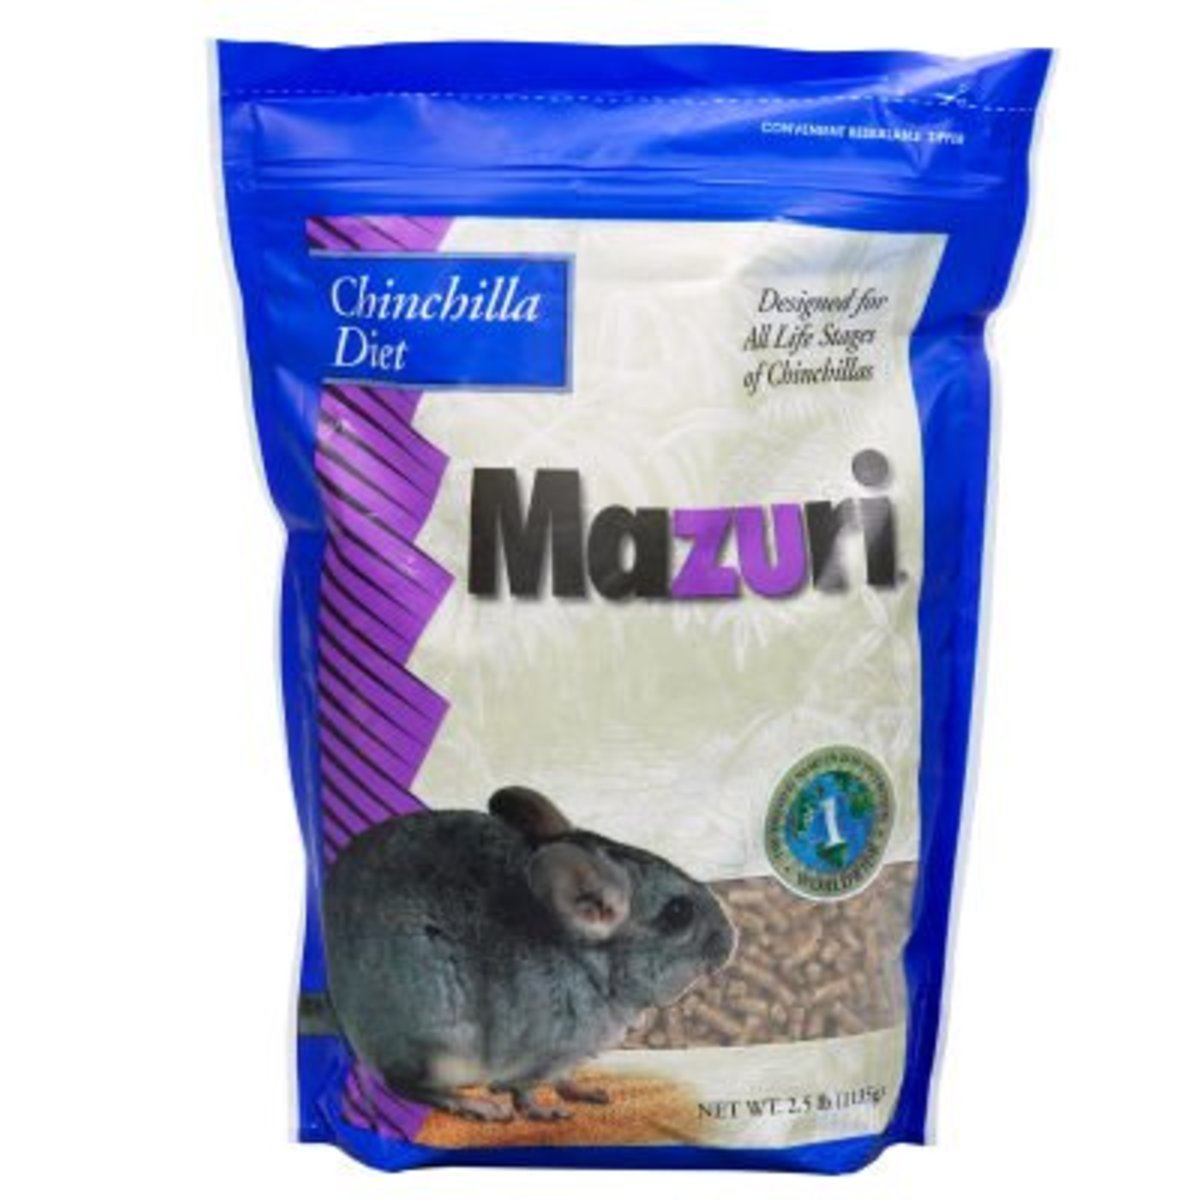 Mazuri food (May come in different packaging)